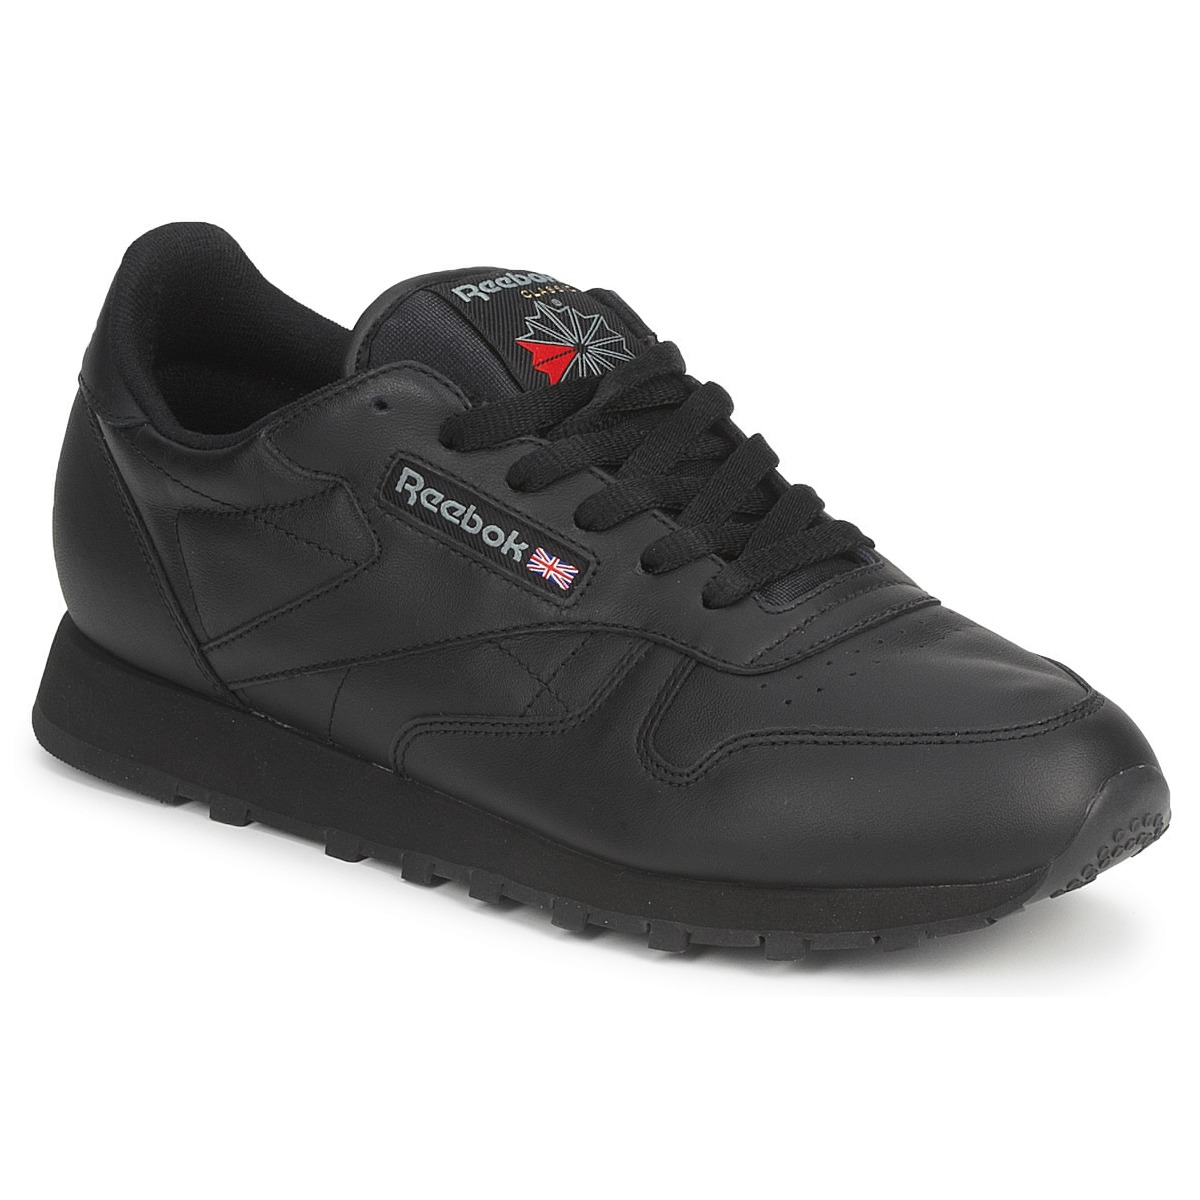 Reebok Classic CLASSIC LEATHER Noir Chaussures Baskets basses Femme 69,99 €